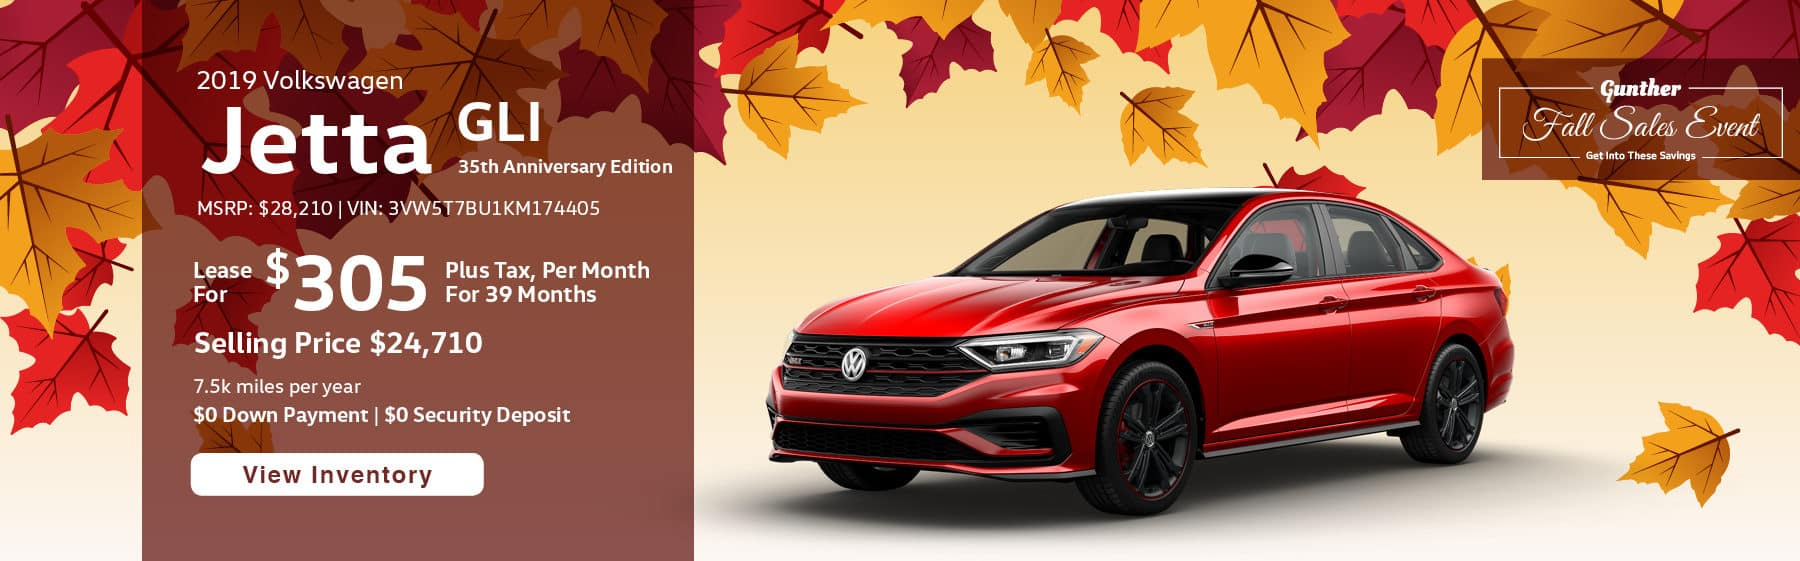 Lease the 2019 Jetta GLI 35th Anniversary Edition for $305 per month, plus tax for 39 months.